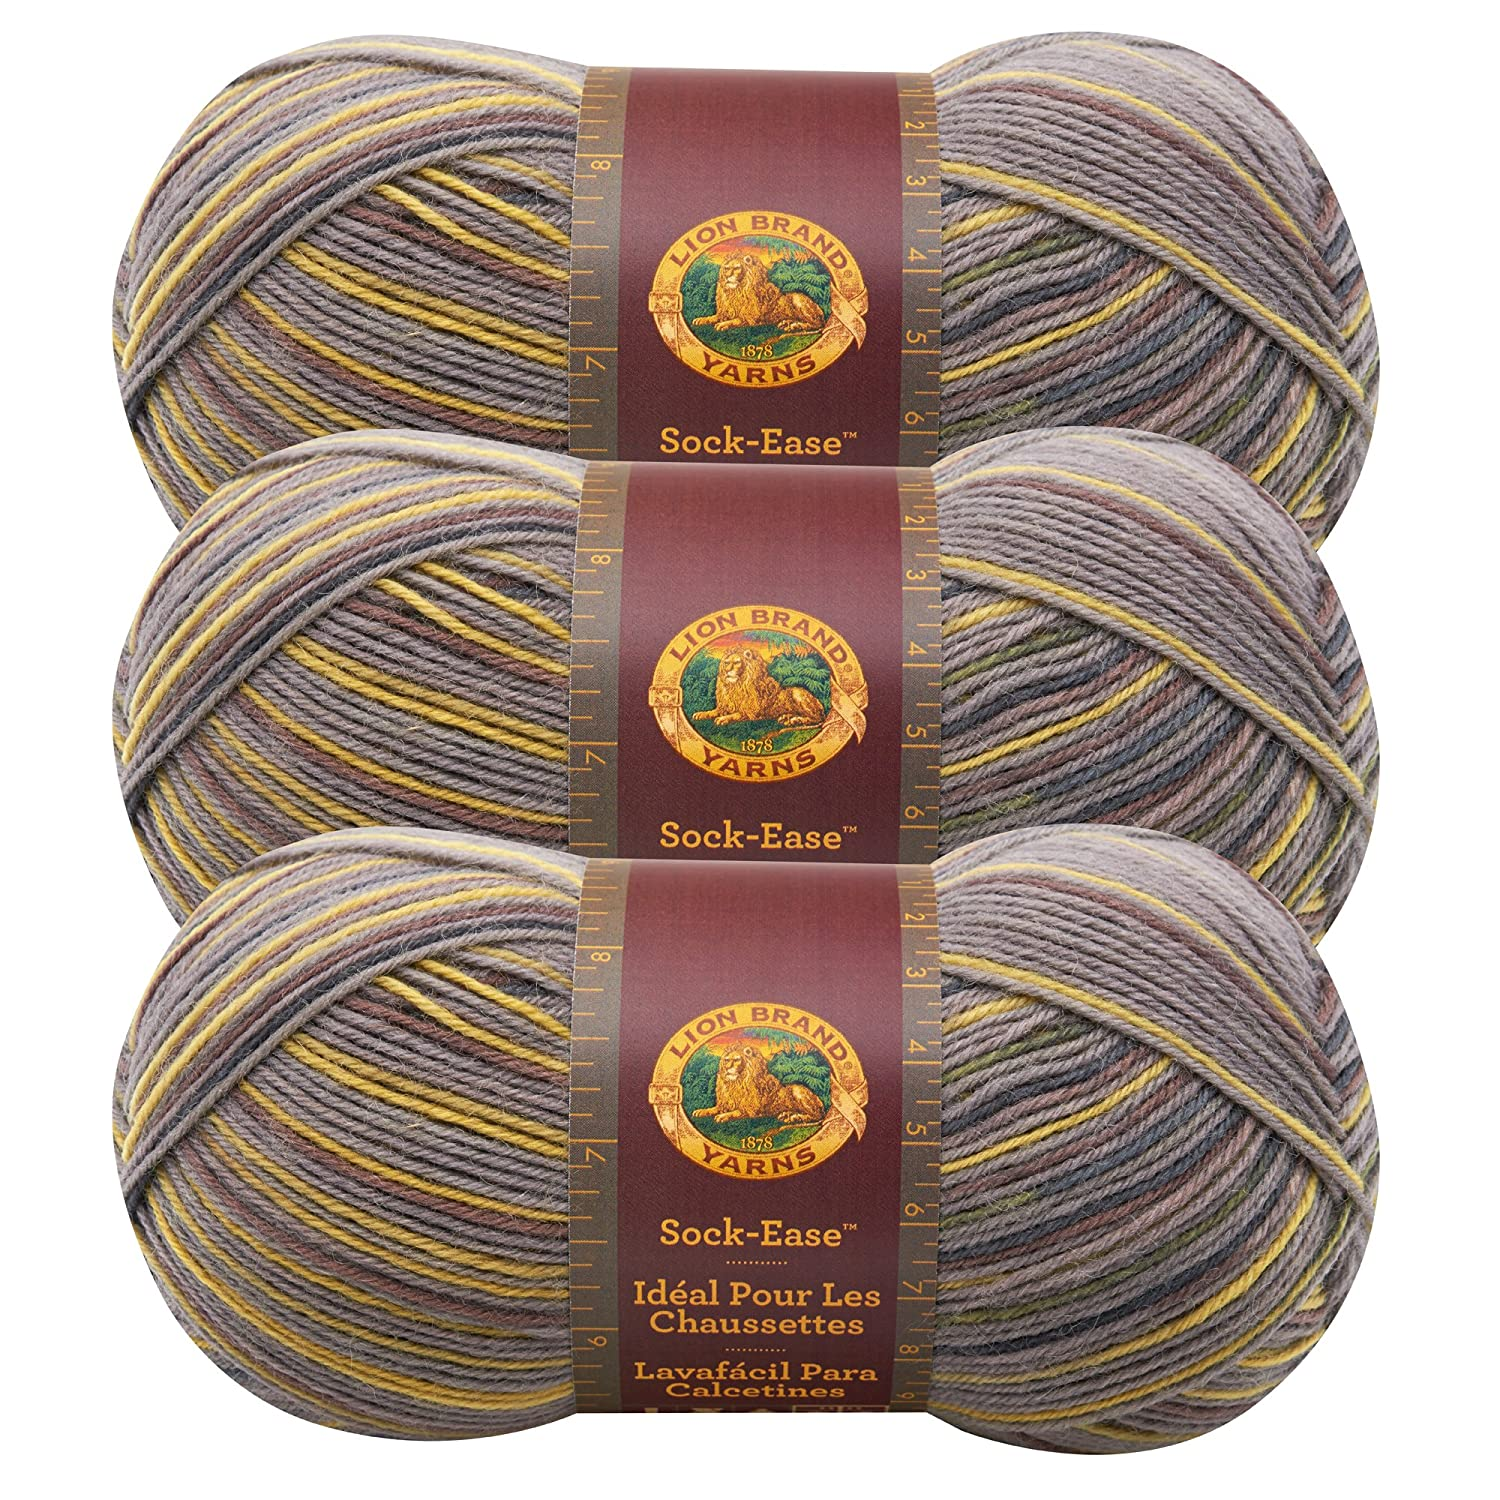 Amazon.com: (3 Pack) Lion Brand Yarn 240-205L Sock-Ease Yarn, Cotton Candy